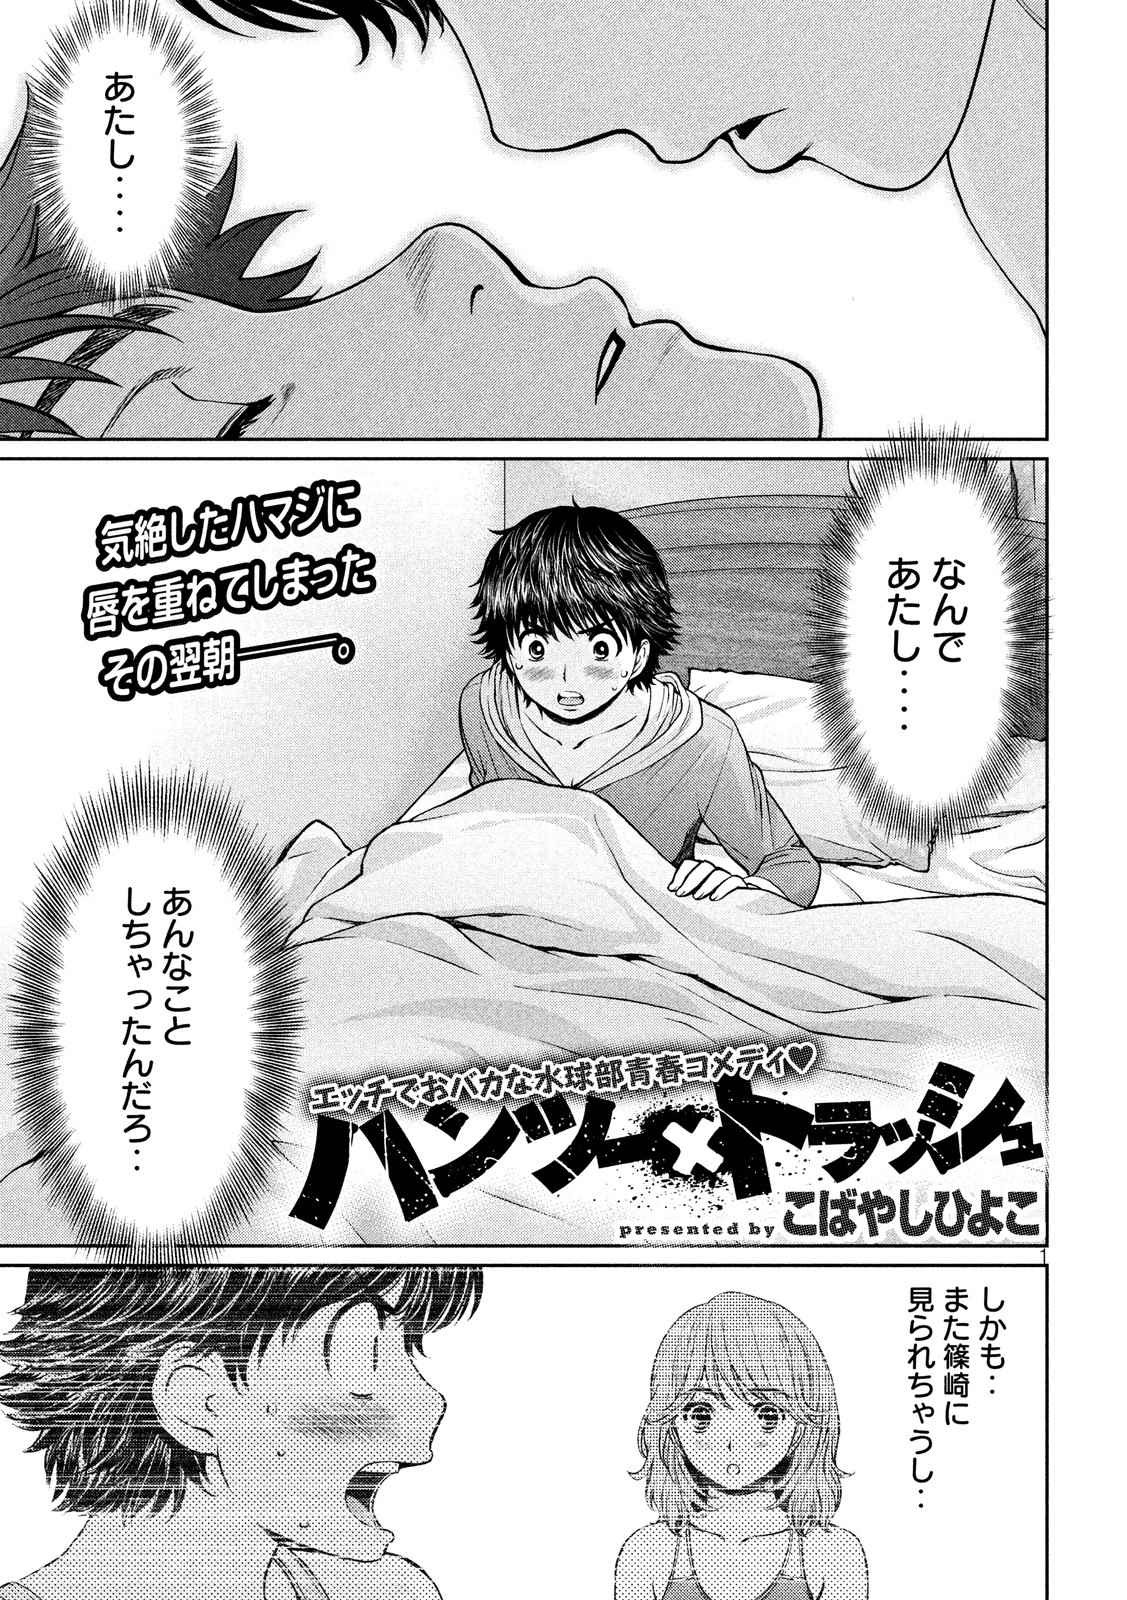 Sen Manga,Hantsu x Trash 138 raw,Loading Hantsu x Trash | Chapter  138 | Page 1 .....